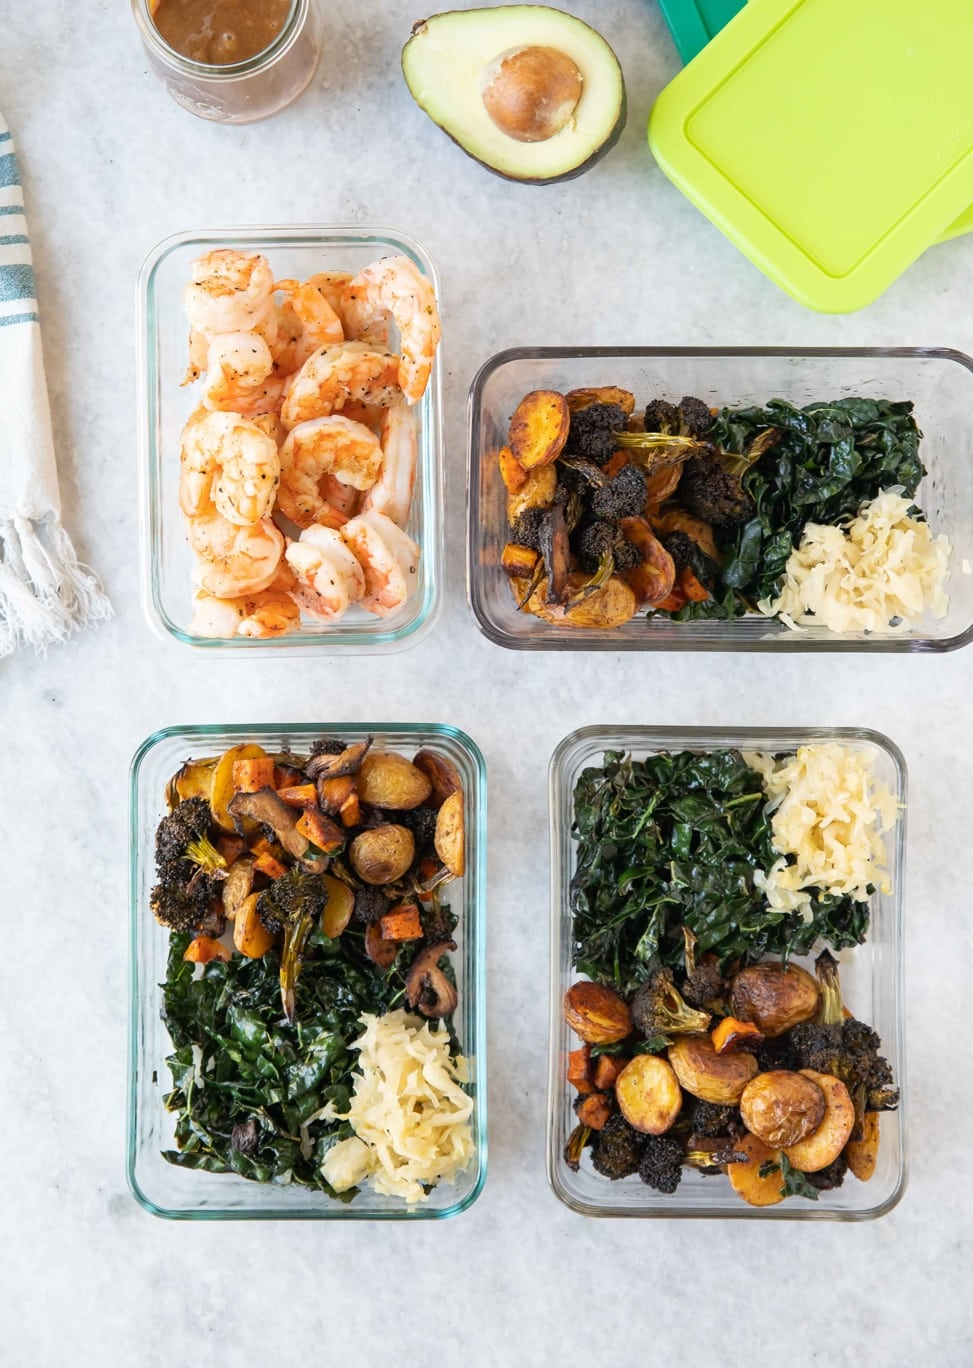 Roasted veggie bowls and a bowl of cooked shrimp displayed on a white marble counter